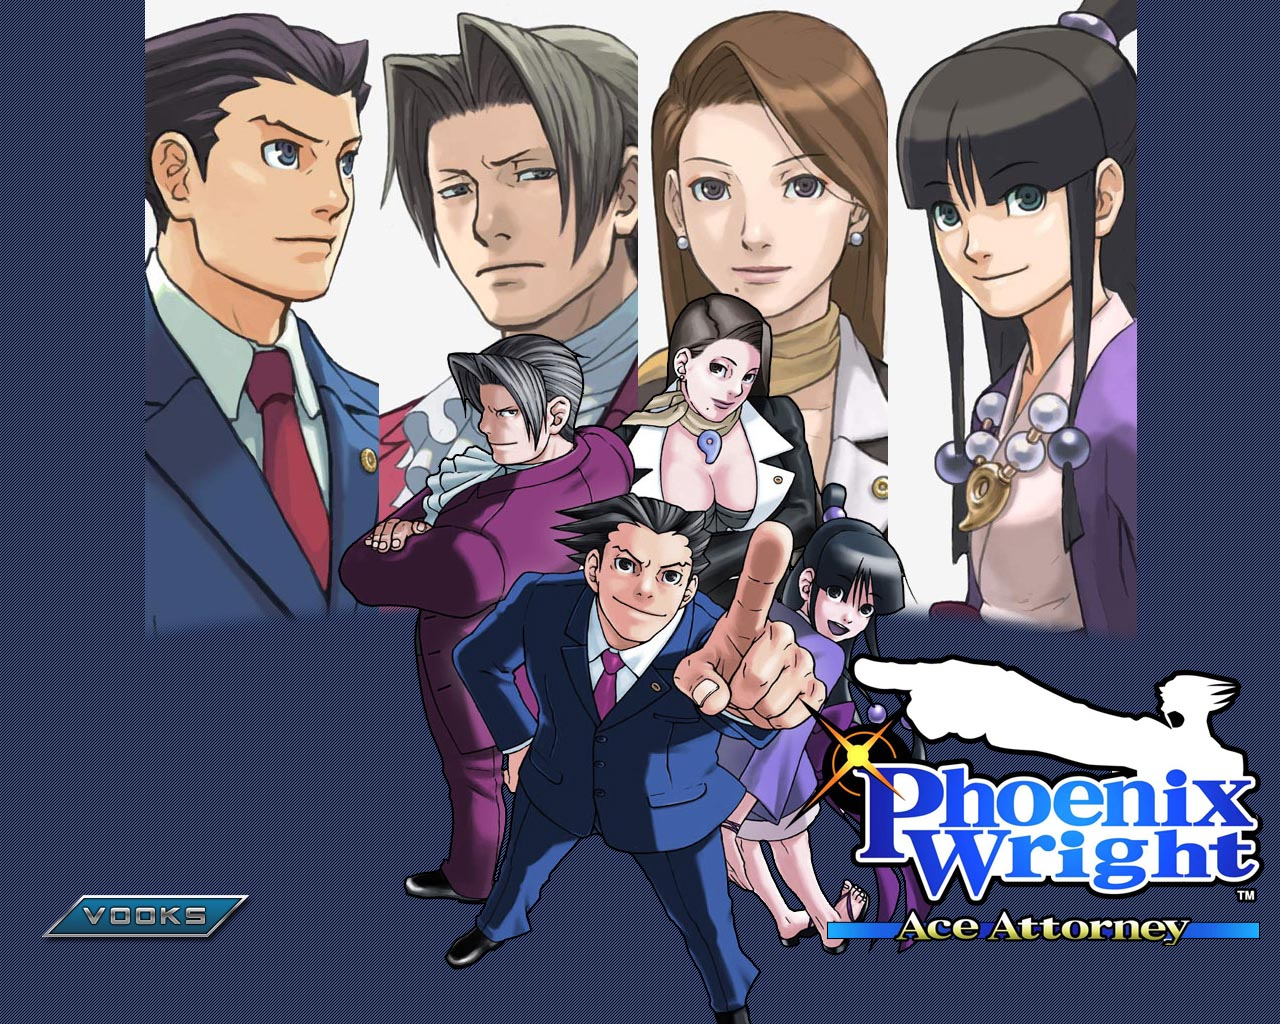 HQ Phoenix Wright: Ace Attorney Wallpapers | File 395.19Kb